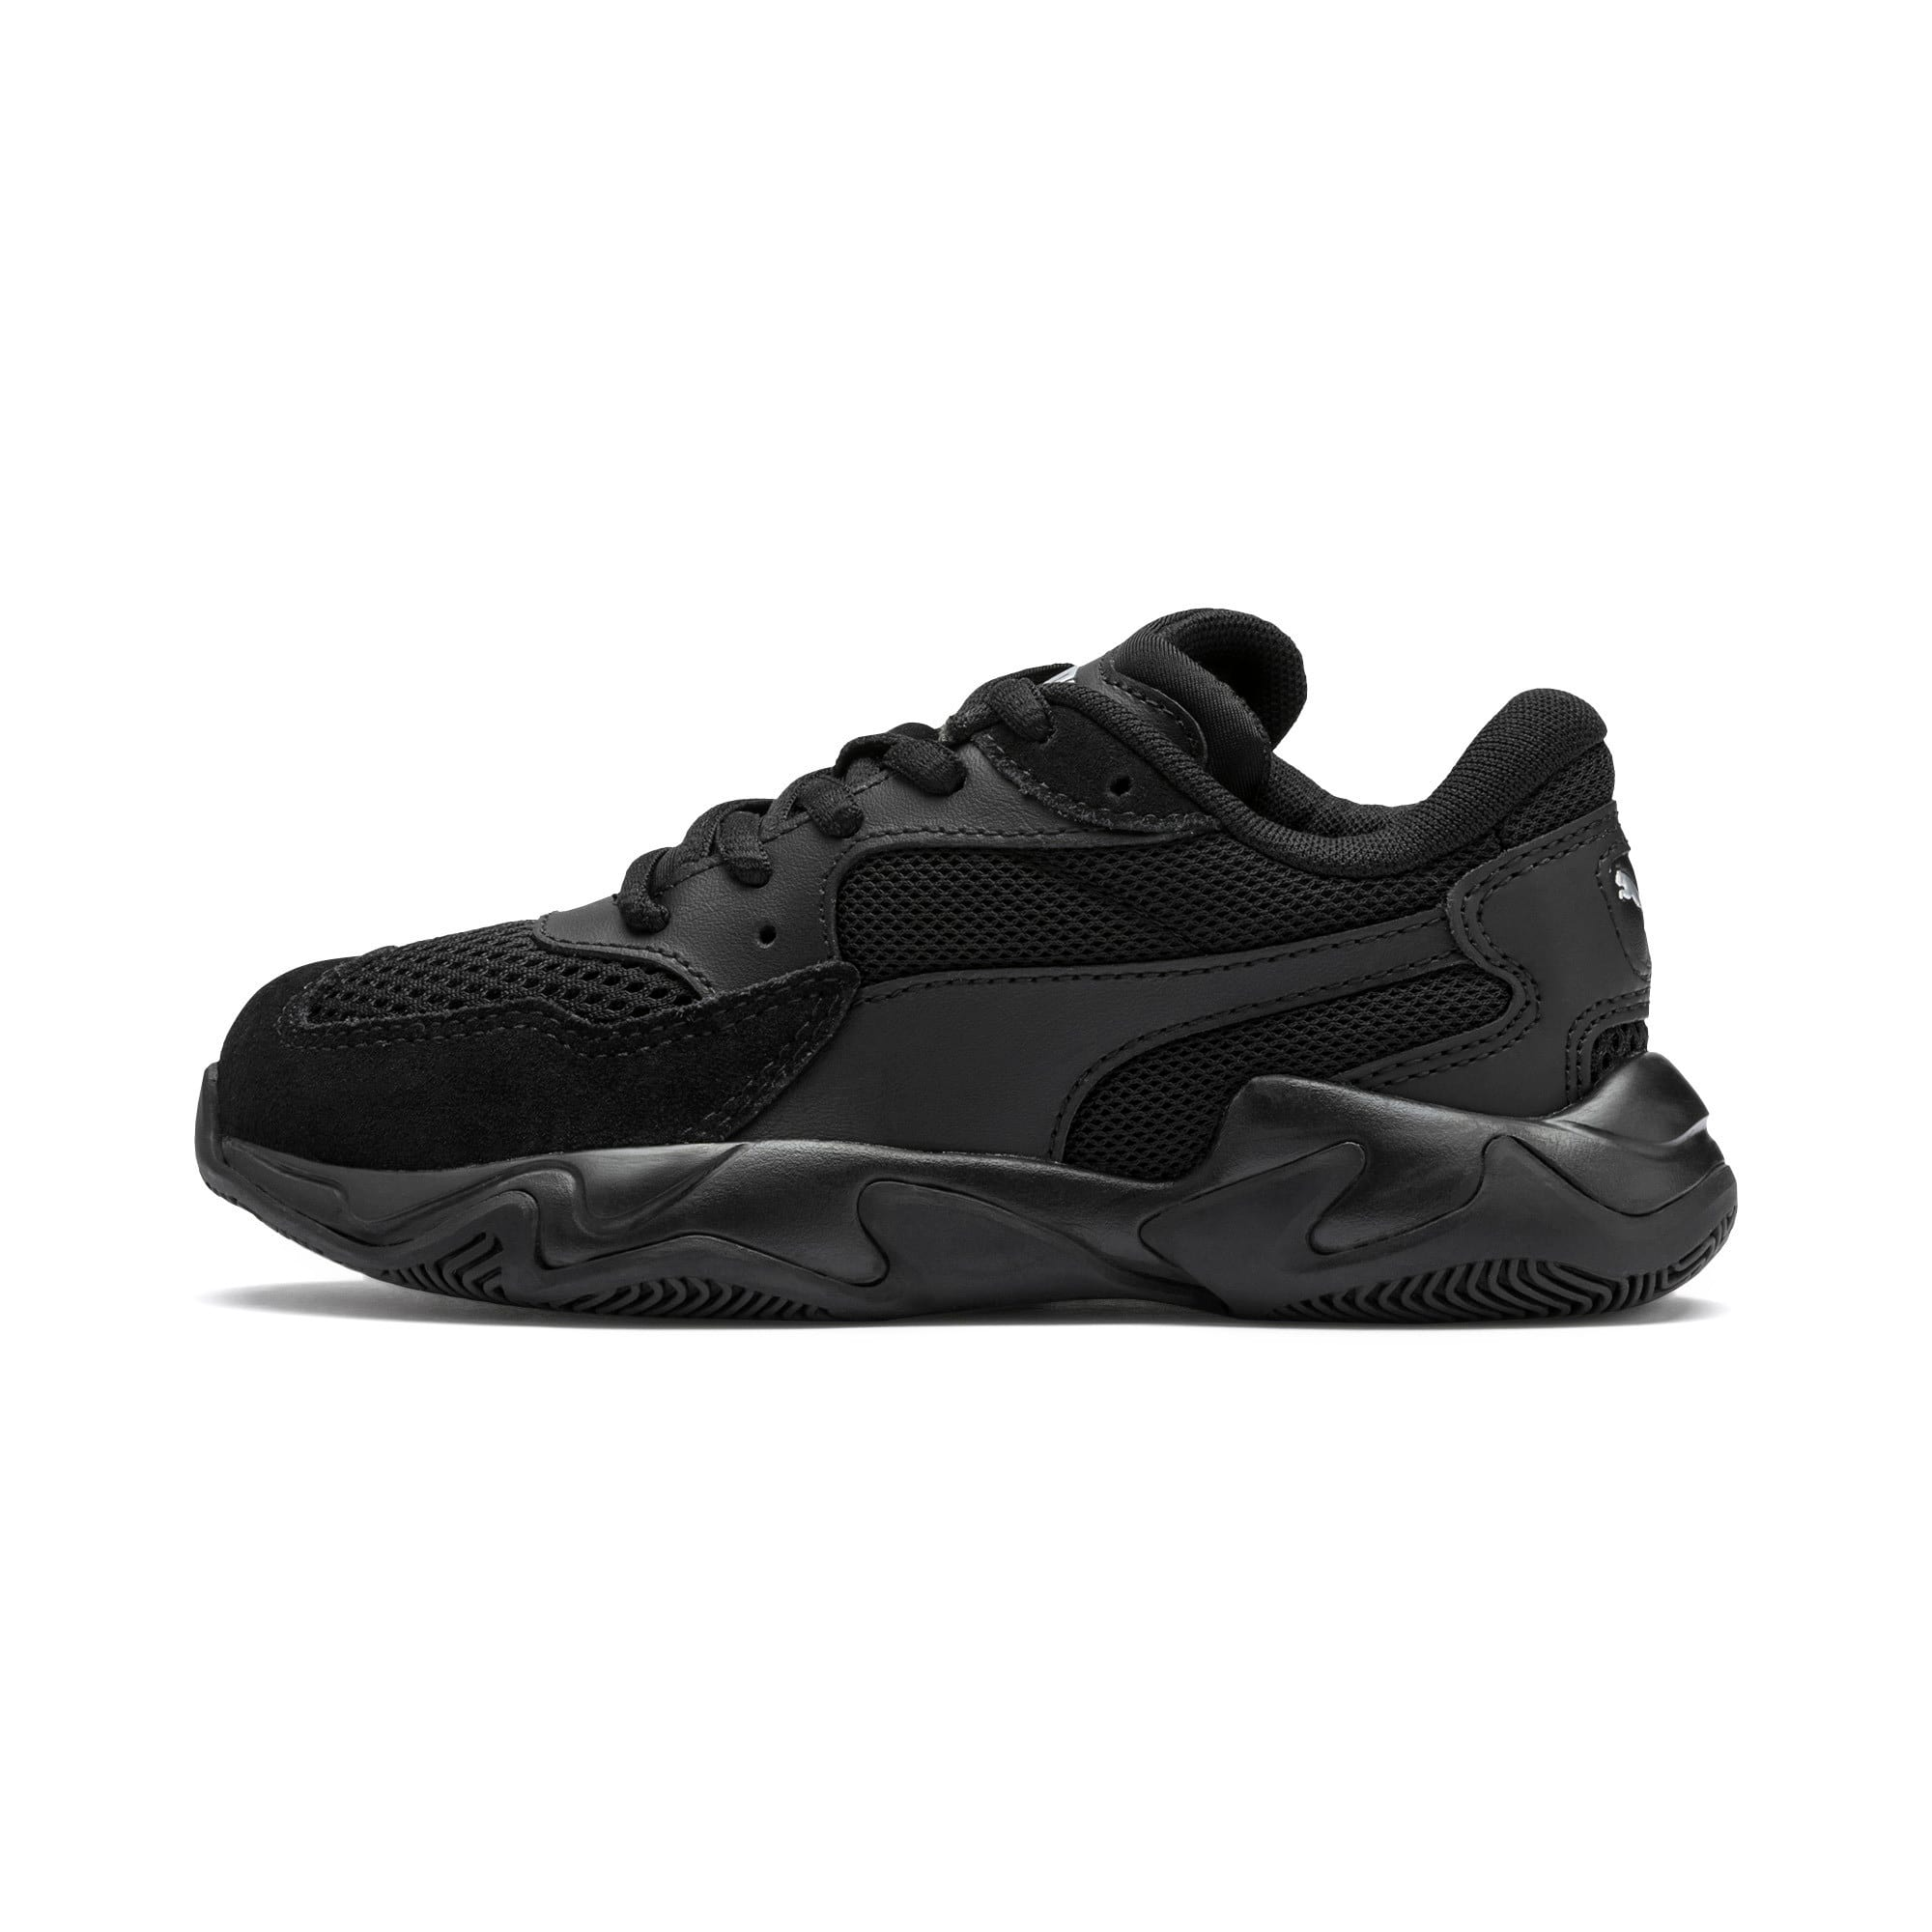 Thumbnail 1 van Storm Origin kindersportschoenen, Puma Black, medium